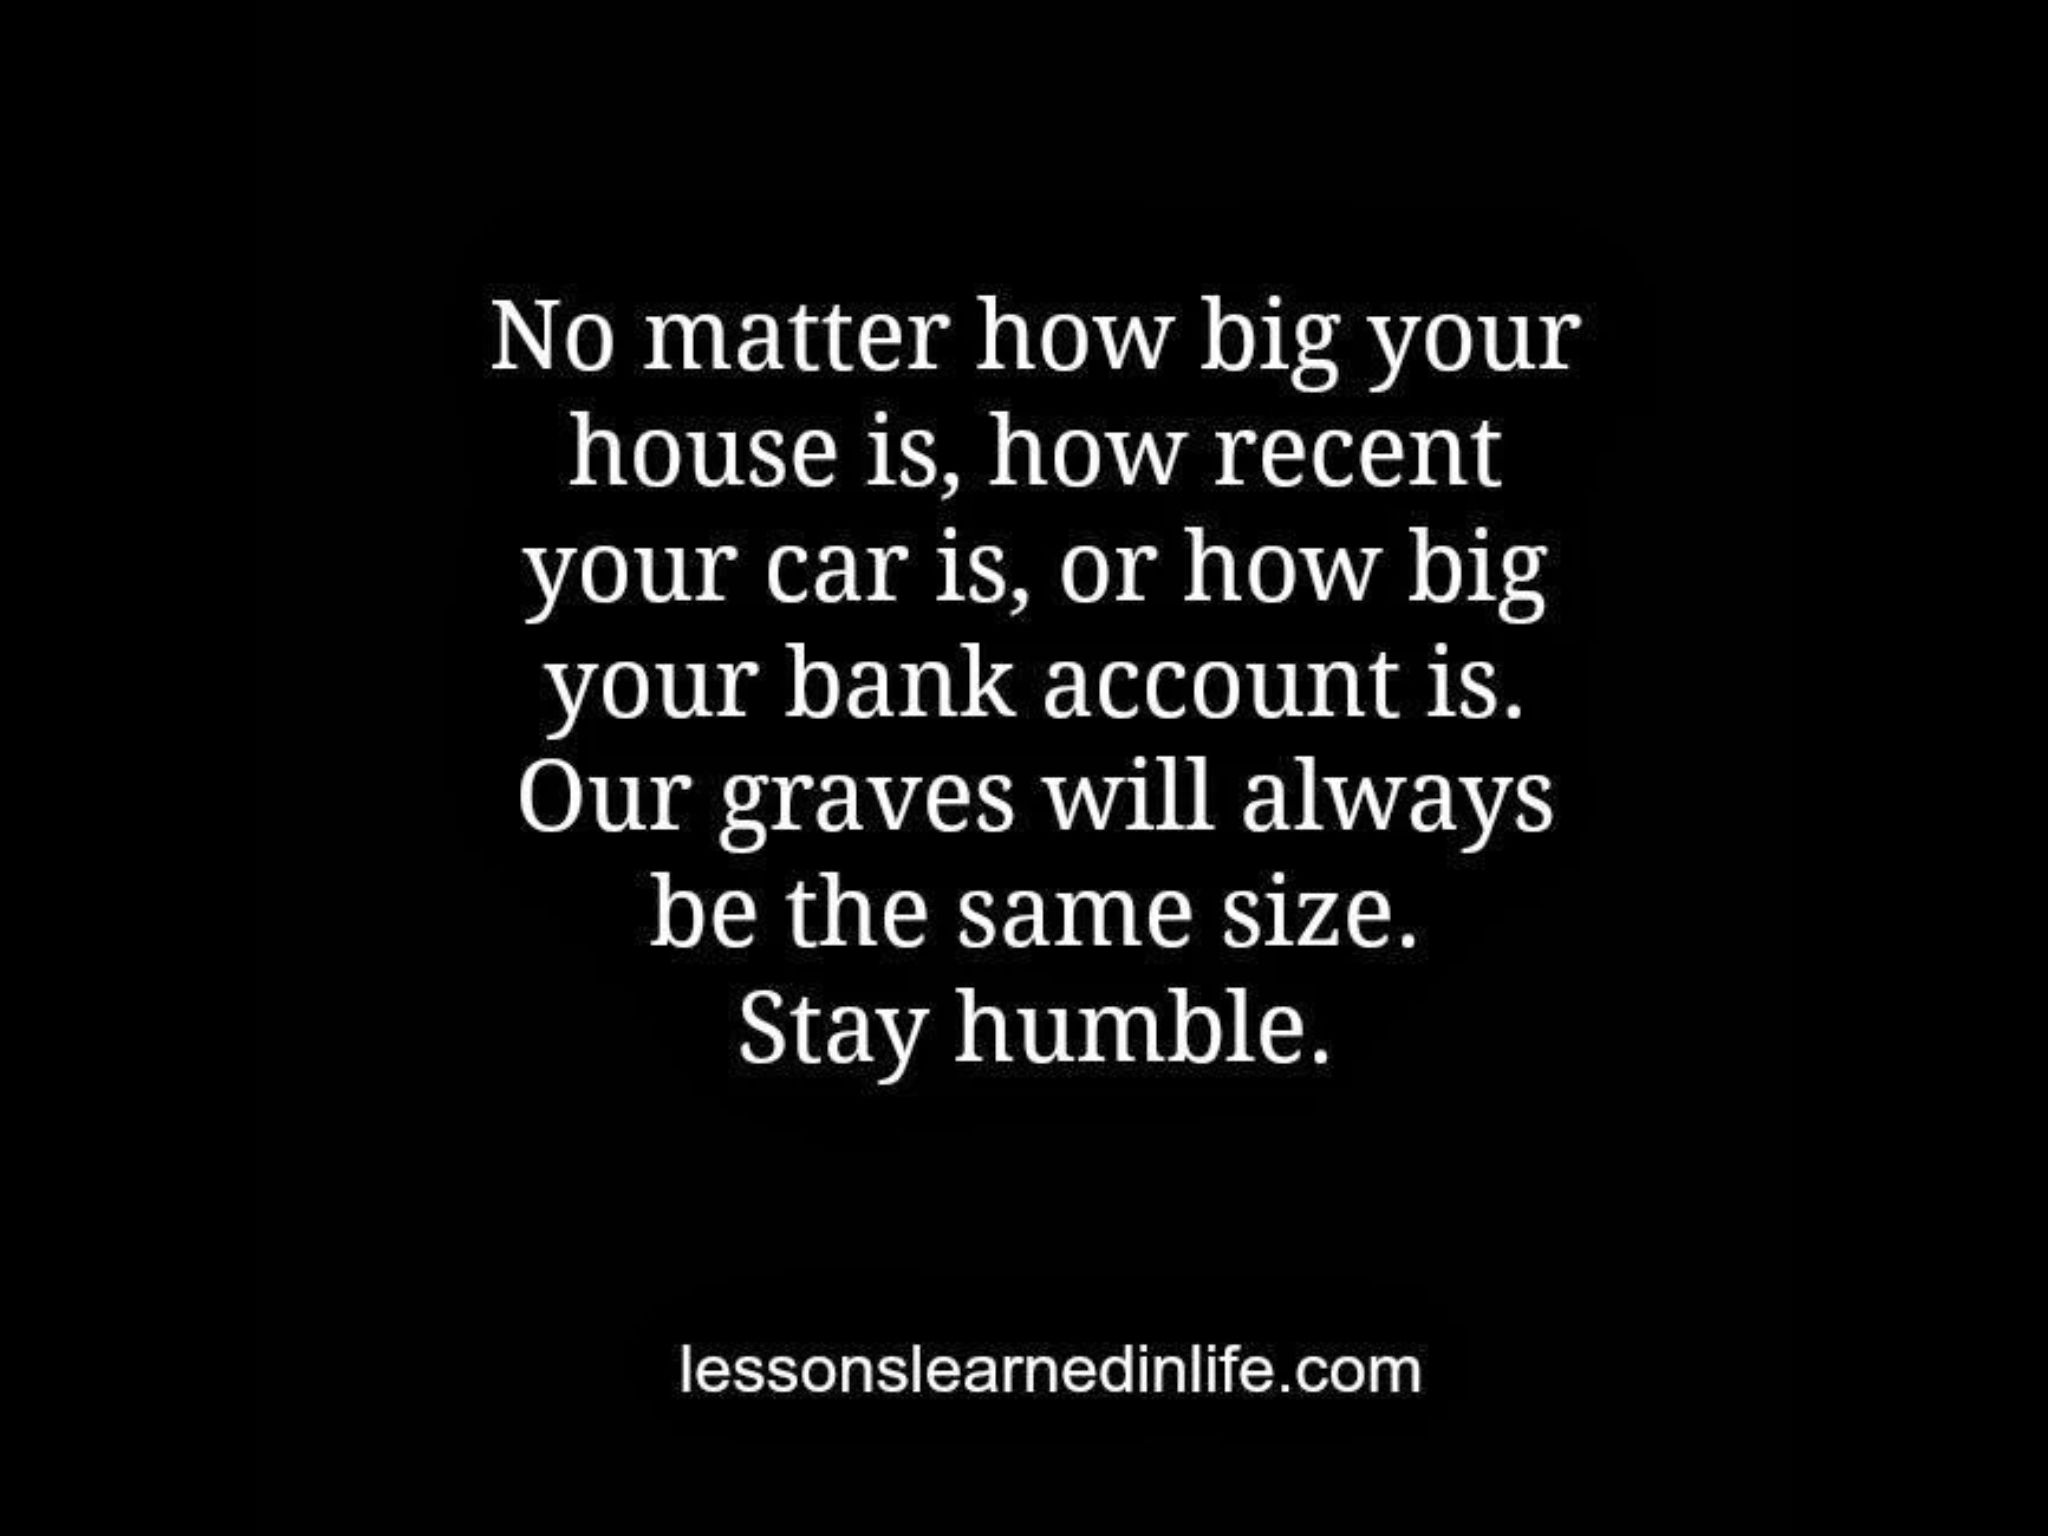 Best 25+ Stay humble quotes ideas on Pinterest | Stay ...